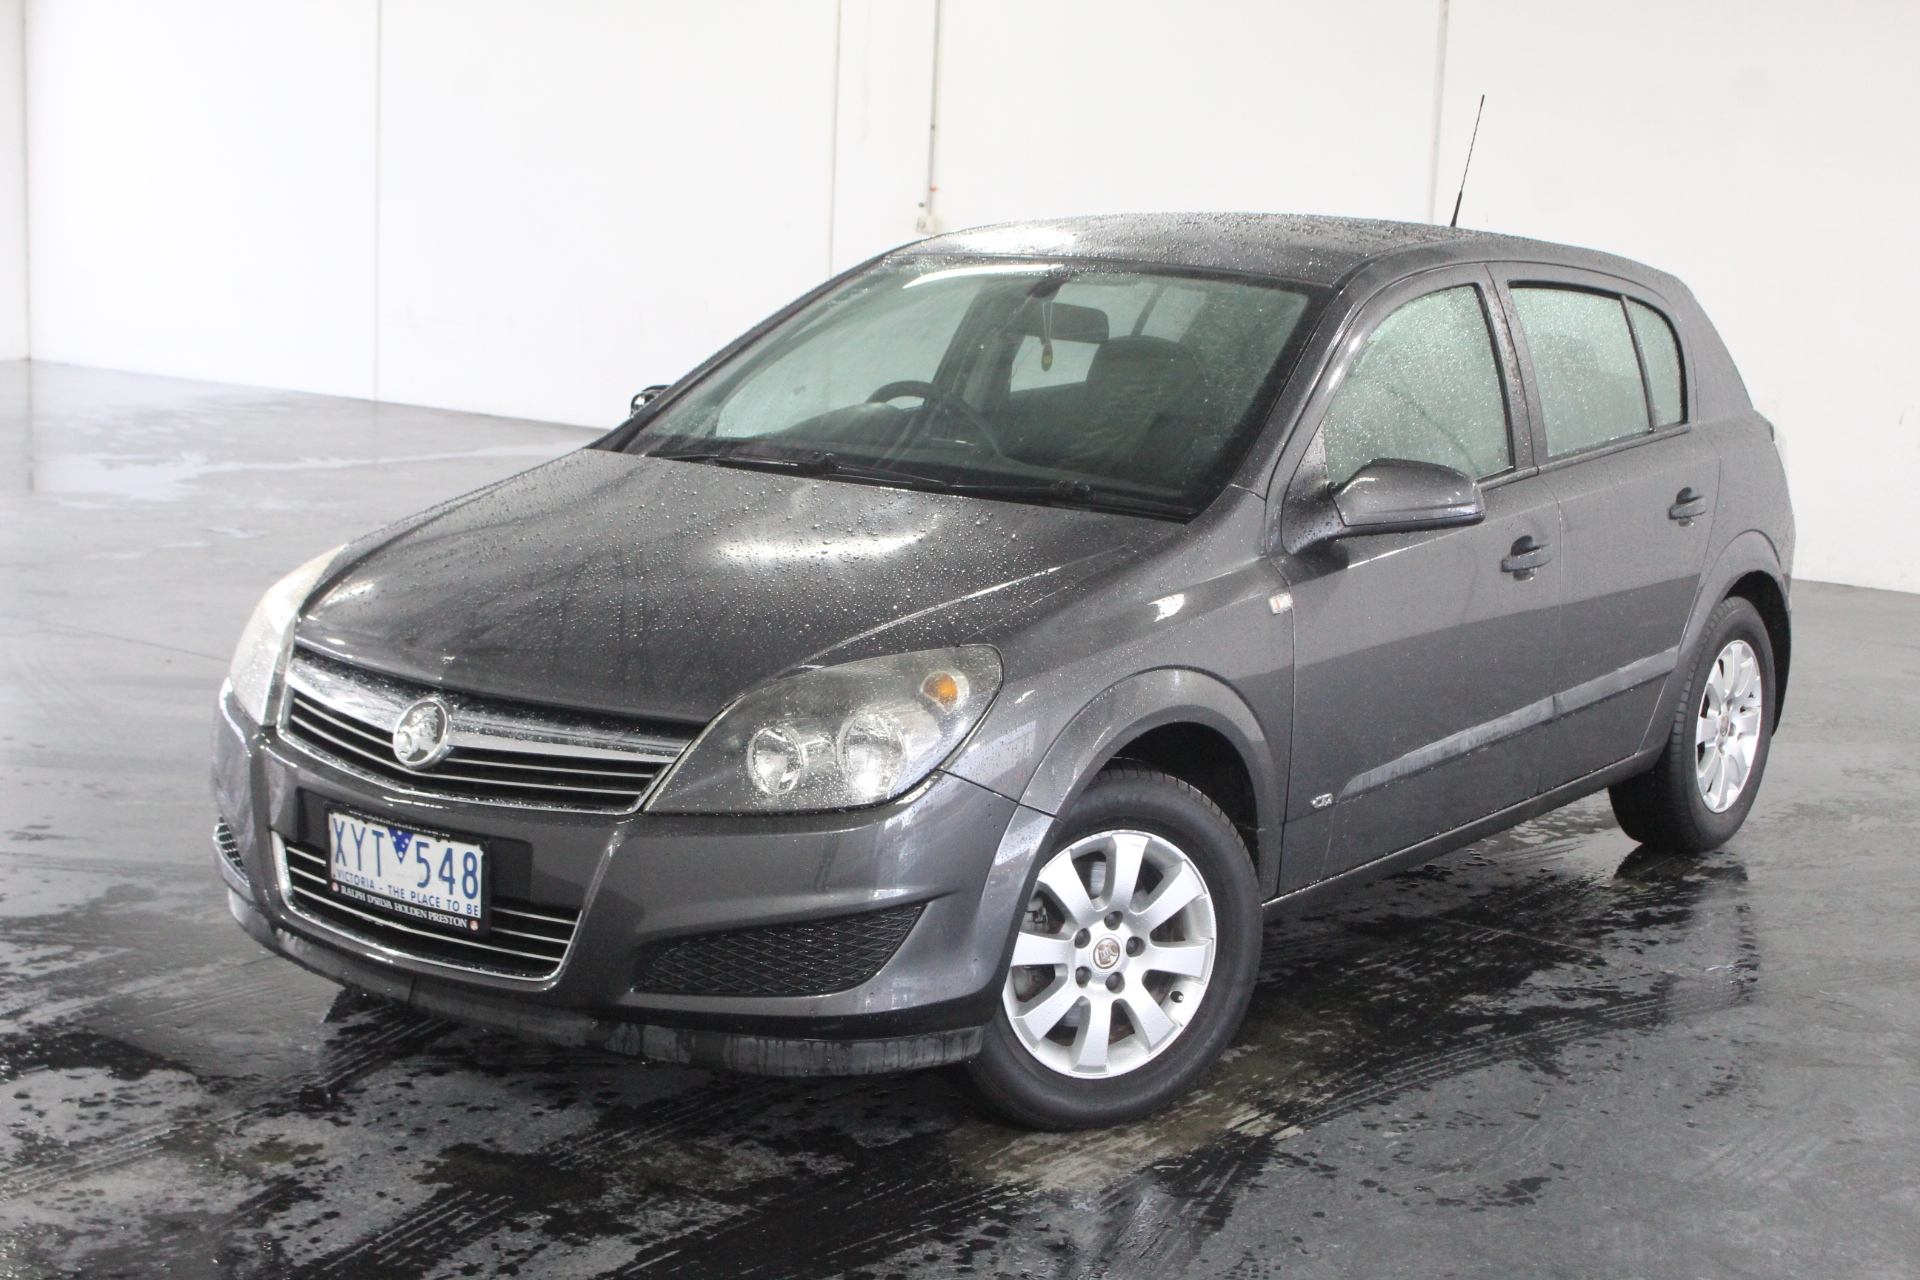 2009 Holden Astra CD AH Automatic Hatchback (WOVR-Inspected)